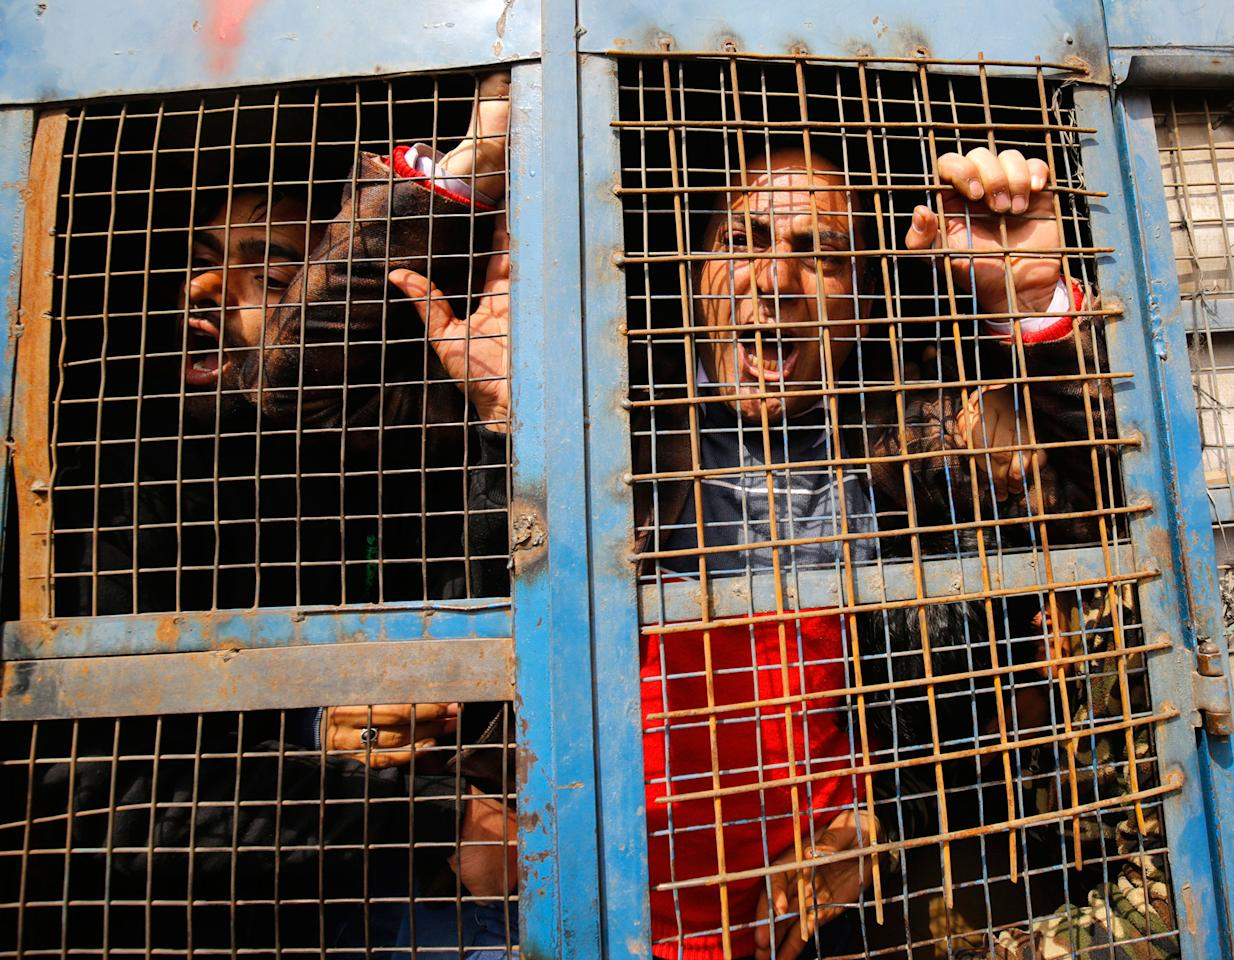 <p>Contractual employees of the National Health Mission shout slogans inside an Indian Police vehicle after they were detained during a protest in Srinagar, the summer capital of Indian Kashmir, 06 March 2017. Indian Police cane charged and arrested half a dozen of employees including doctors and paramedics to disperse them during a protest march when they were demanding regularization of their services. (Farooq Khan/EPA) </p>